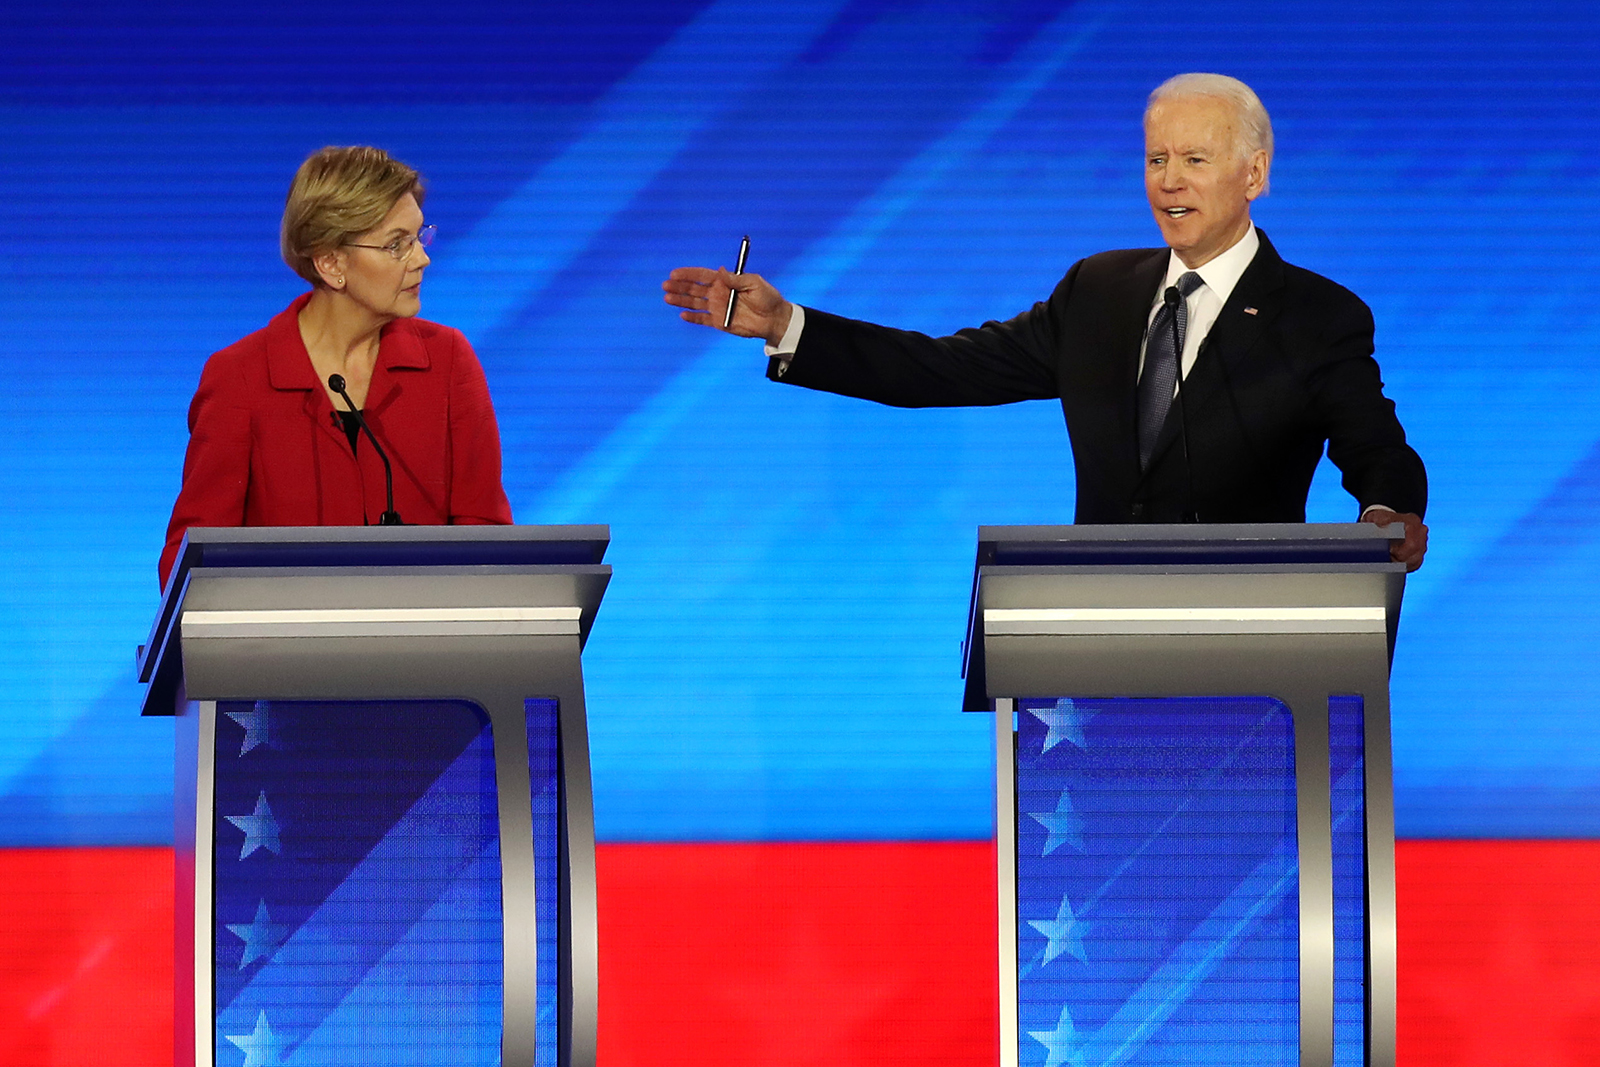 Democratic presidential candidates Sen. Elizabeth Warren and former Vice President Joe Biden participate in the Democratic presidential primary debate in the Sullivan Arena at St. Anselm College on February 7, in Manchester, New Hampshire.